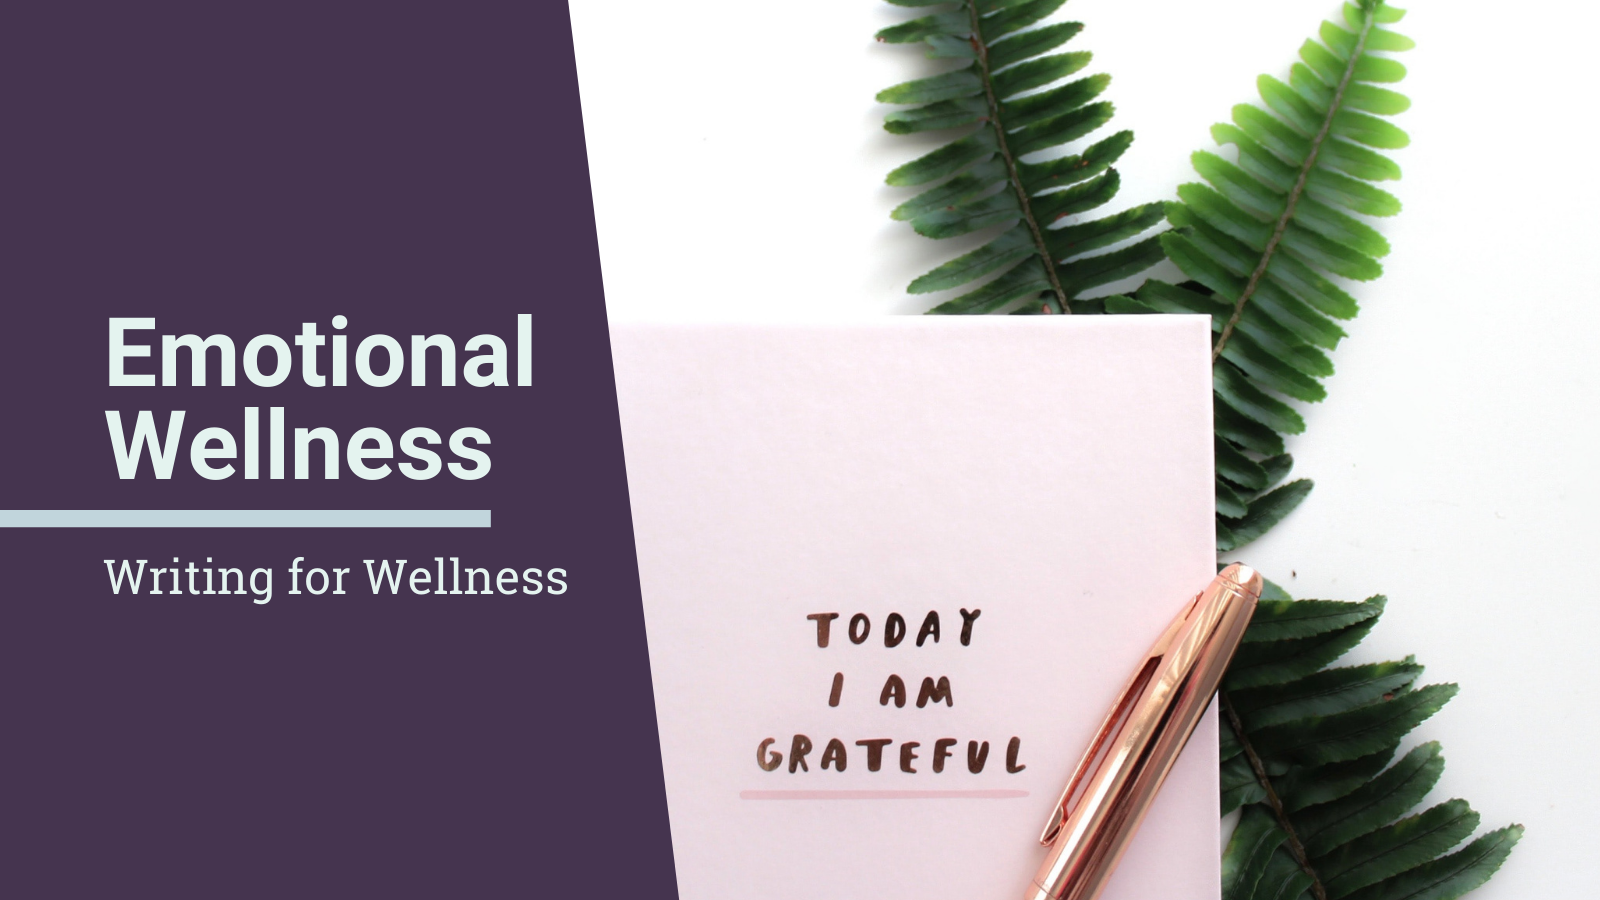 Writing for Wellness: Emotional Wellness - text overlaid on a gratitude journal with a pen and leaves